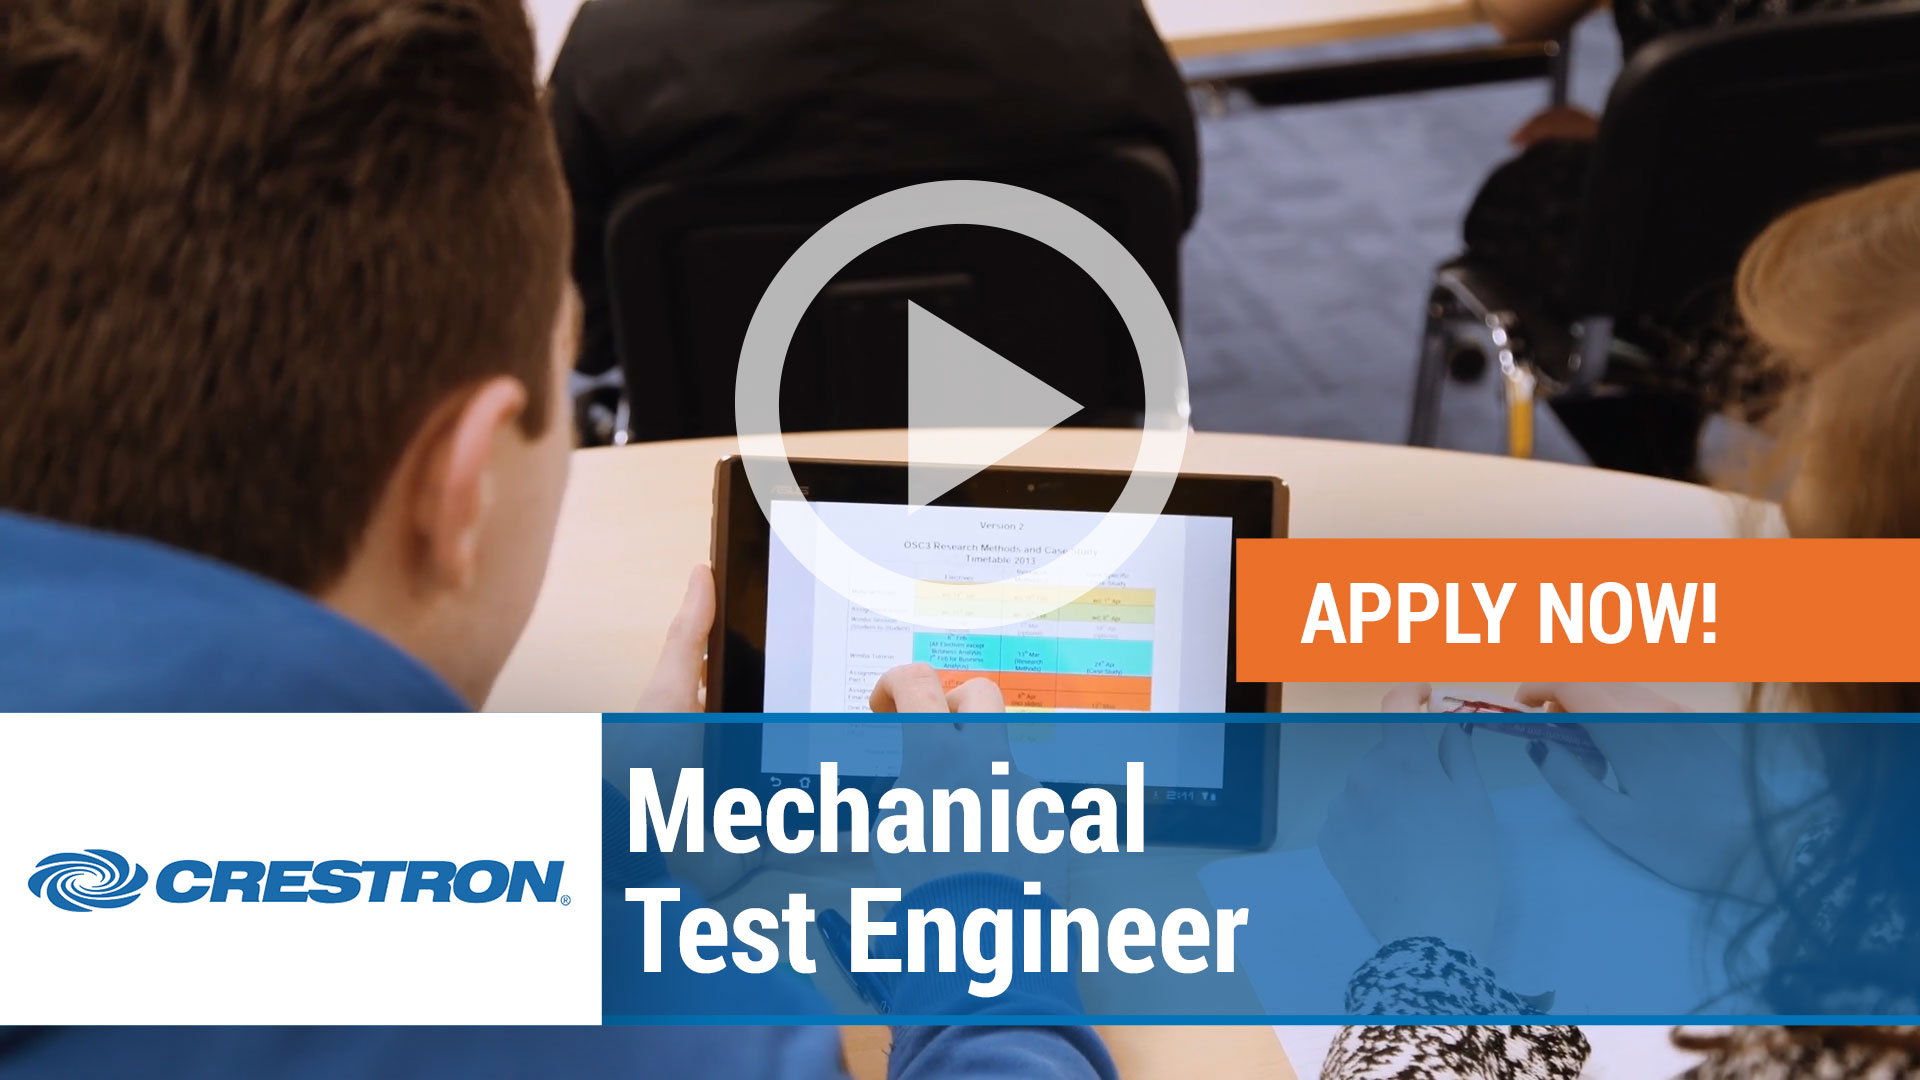 Watch our careers video for available job opening Mechanical Test Engineer in Orangeburg, New York